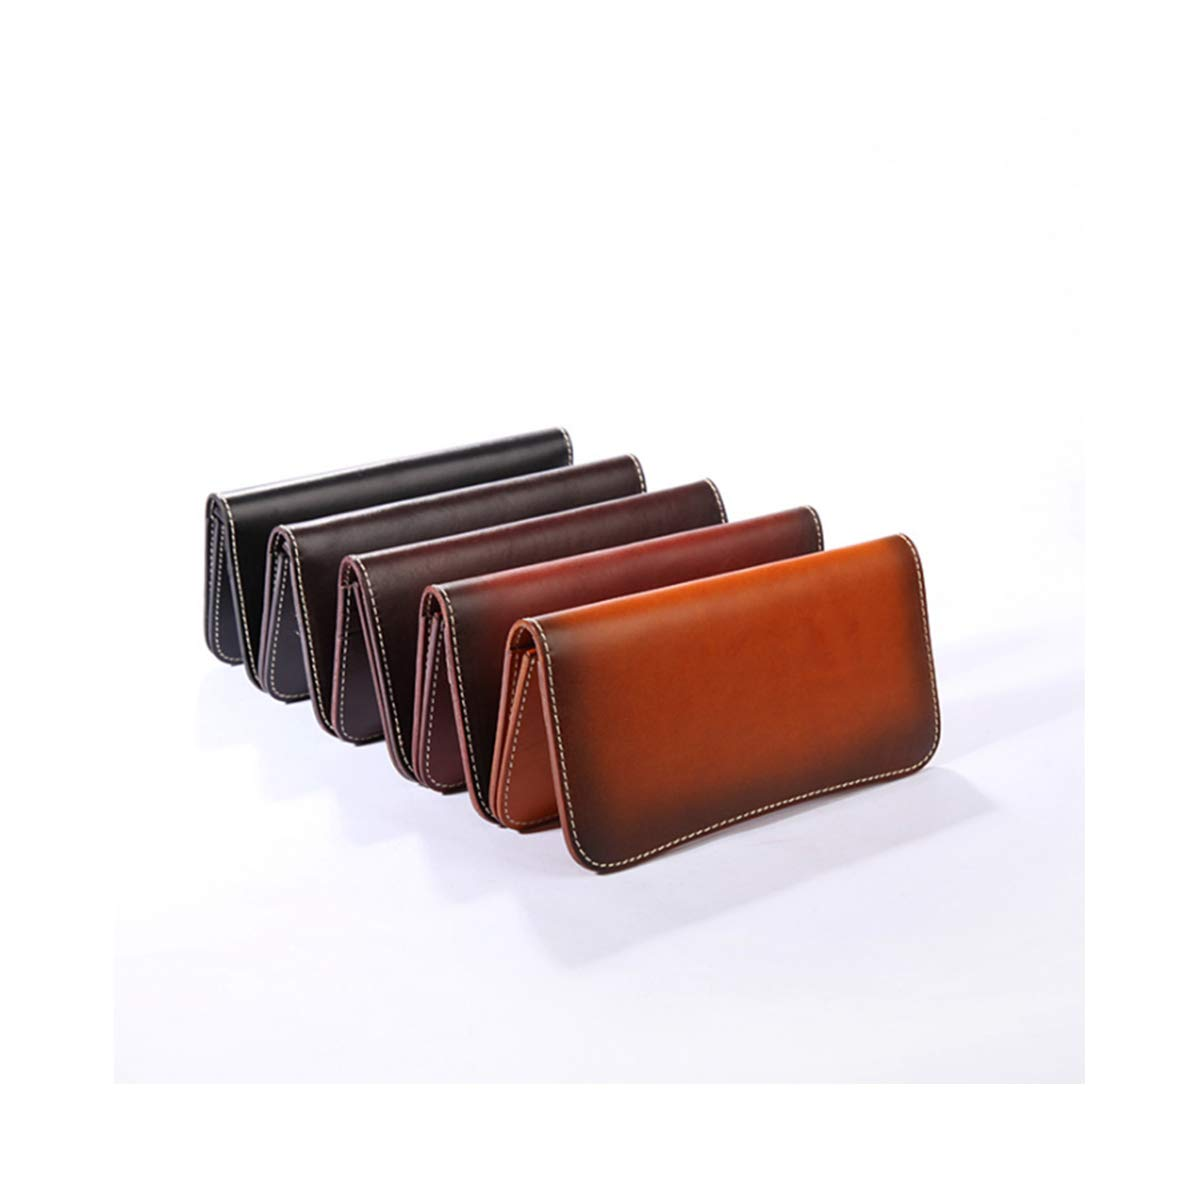 Xingganglengyin 2019 Handmade Leather Vegetable Tanned Long Wallet Leather Wallet Vintage Cross-Border Exclusive Color : Black